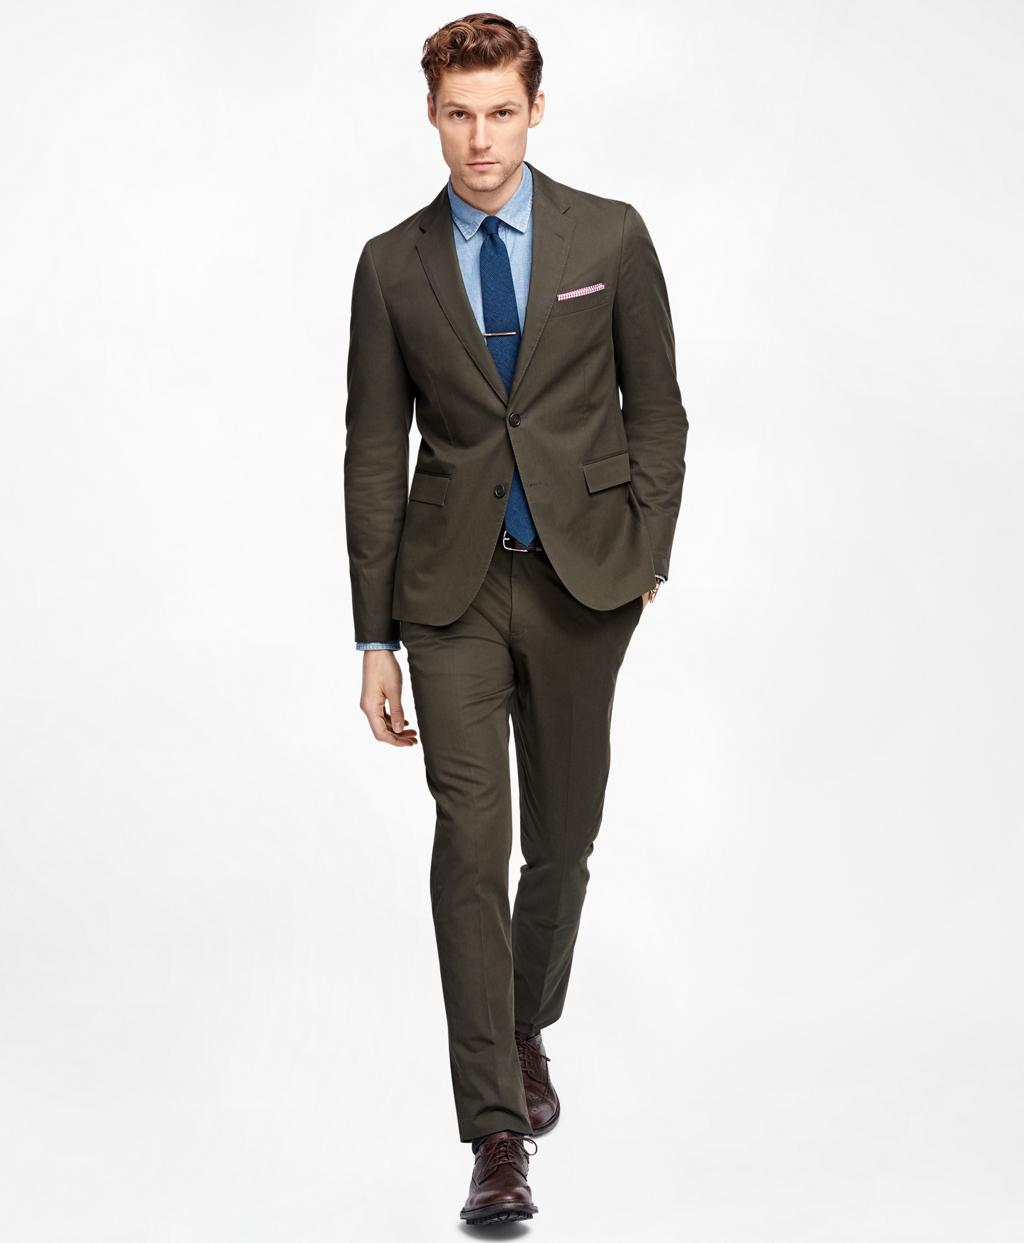 Lyst - Brooks brothers Olive Twill Suit Trousers in Green ...